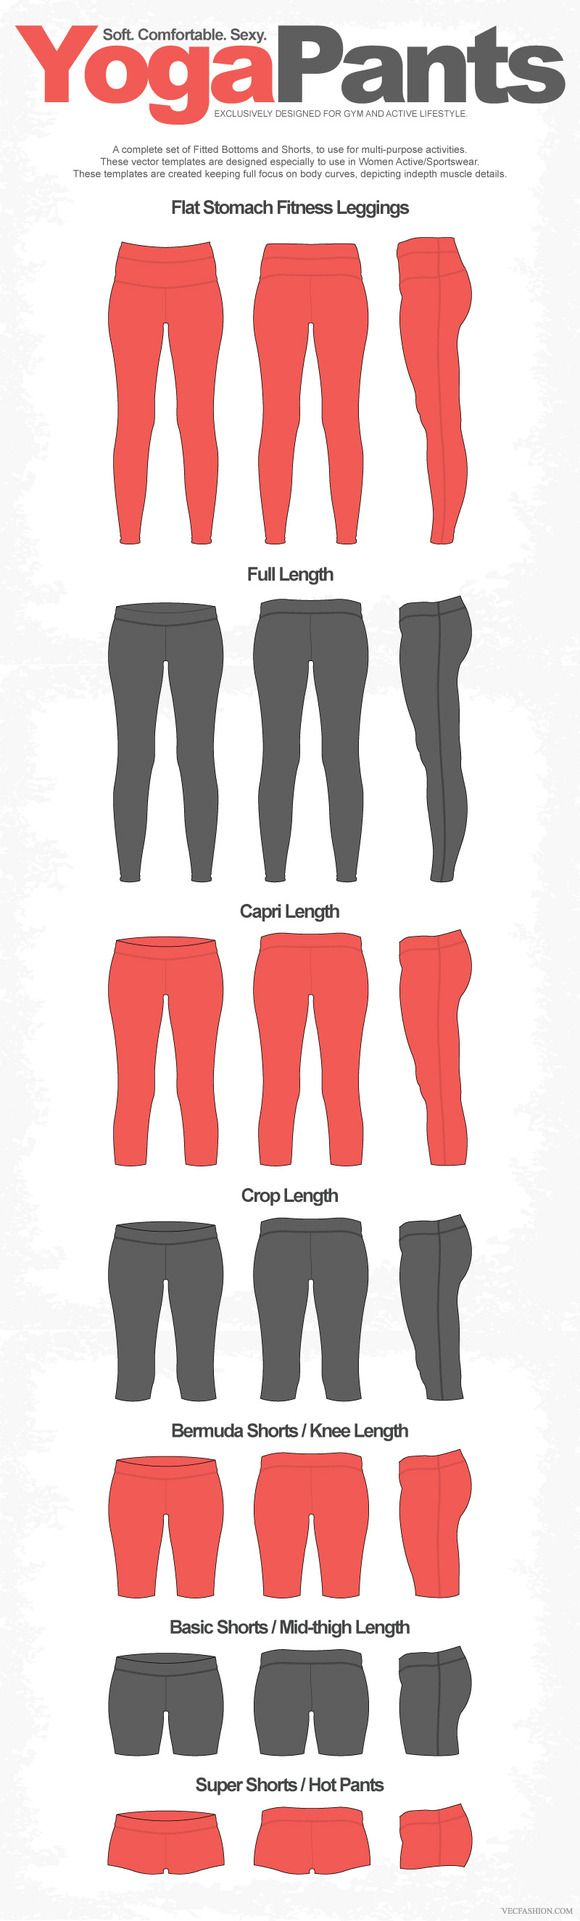 17 best ideas about Yoga Pants Pattern on Pinterest | Pajama pants ...